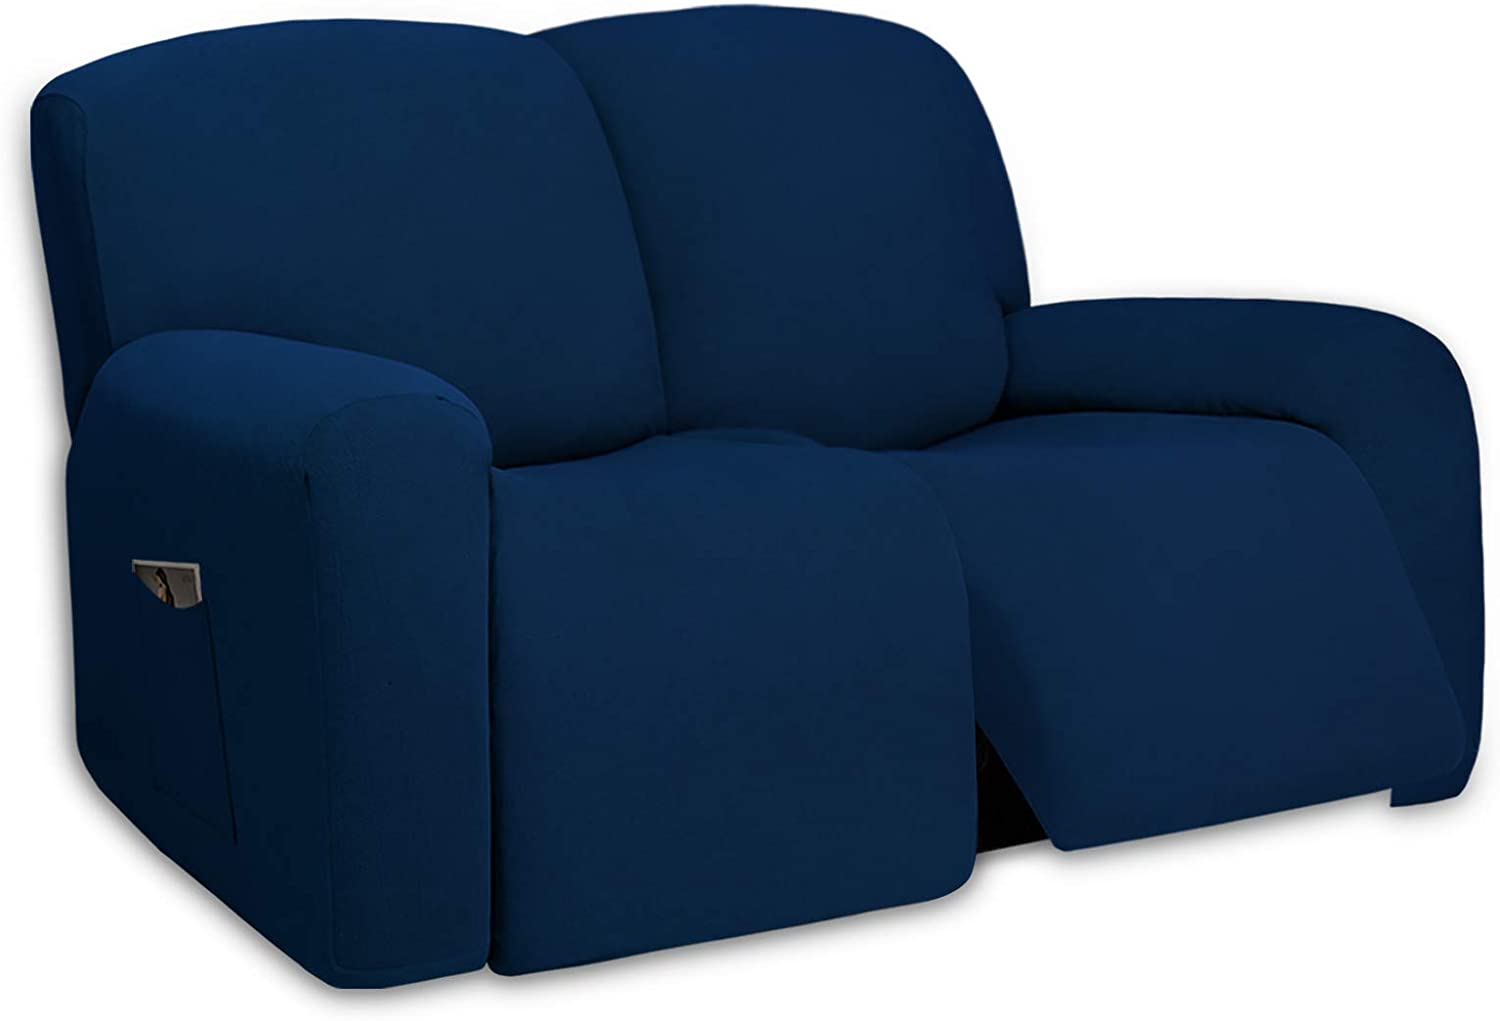 PureFit Super Stretch Loveseat Recliner Sofa Couch Cover with Pocket – 2 Seats Lazy Boy Non Slip Soft Sofa Slipcover, Washable Reclining Furniture Protector for Kids, Pets (Recliner Loveseat, Navy)